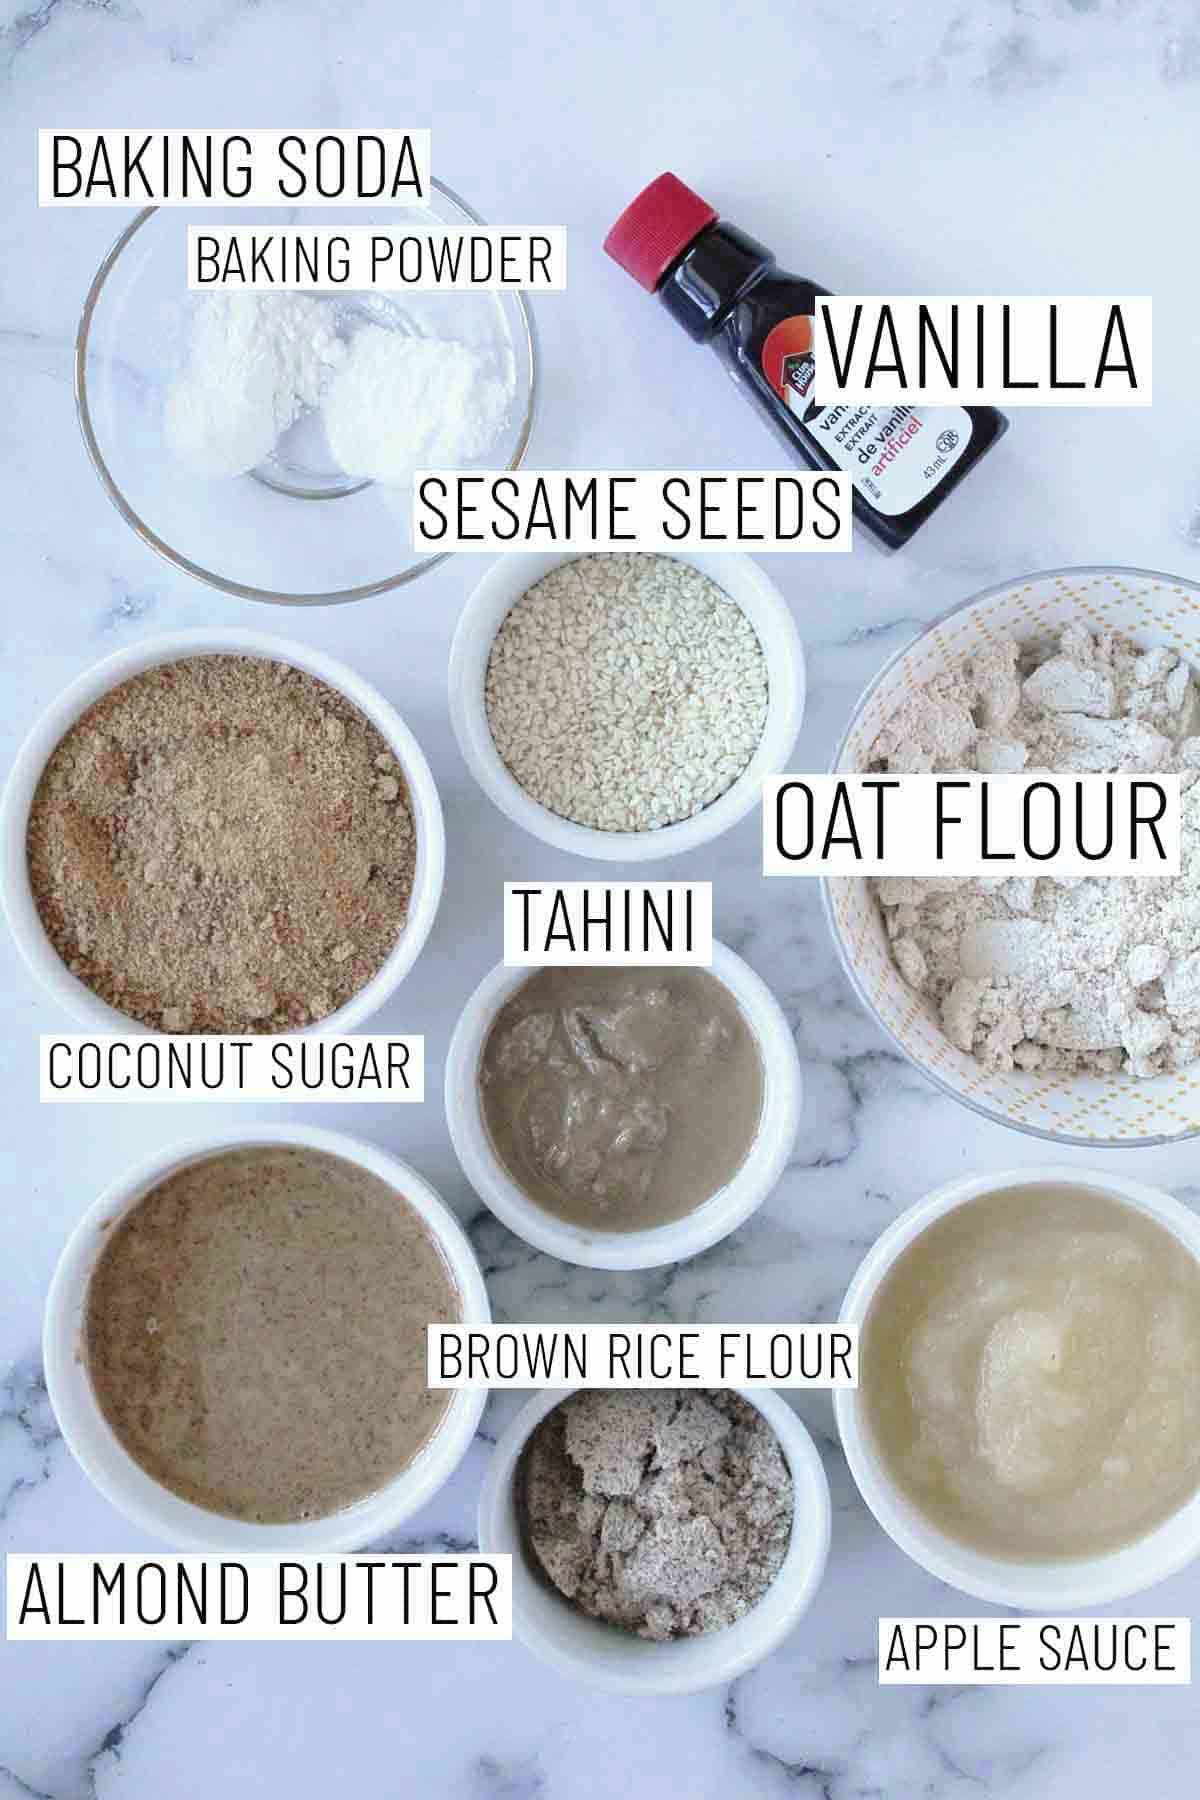 Flat lay image showing portioned recipe ingredients including oat flour, tahini, coconut sugar, brown rice flour, almond butter, apple sauce, vanilla, sesame seeds, baking soda, and baking powder.